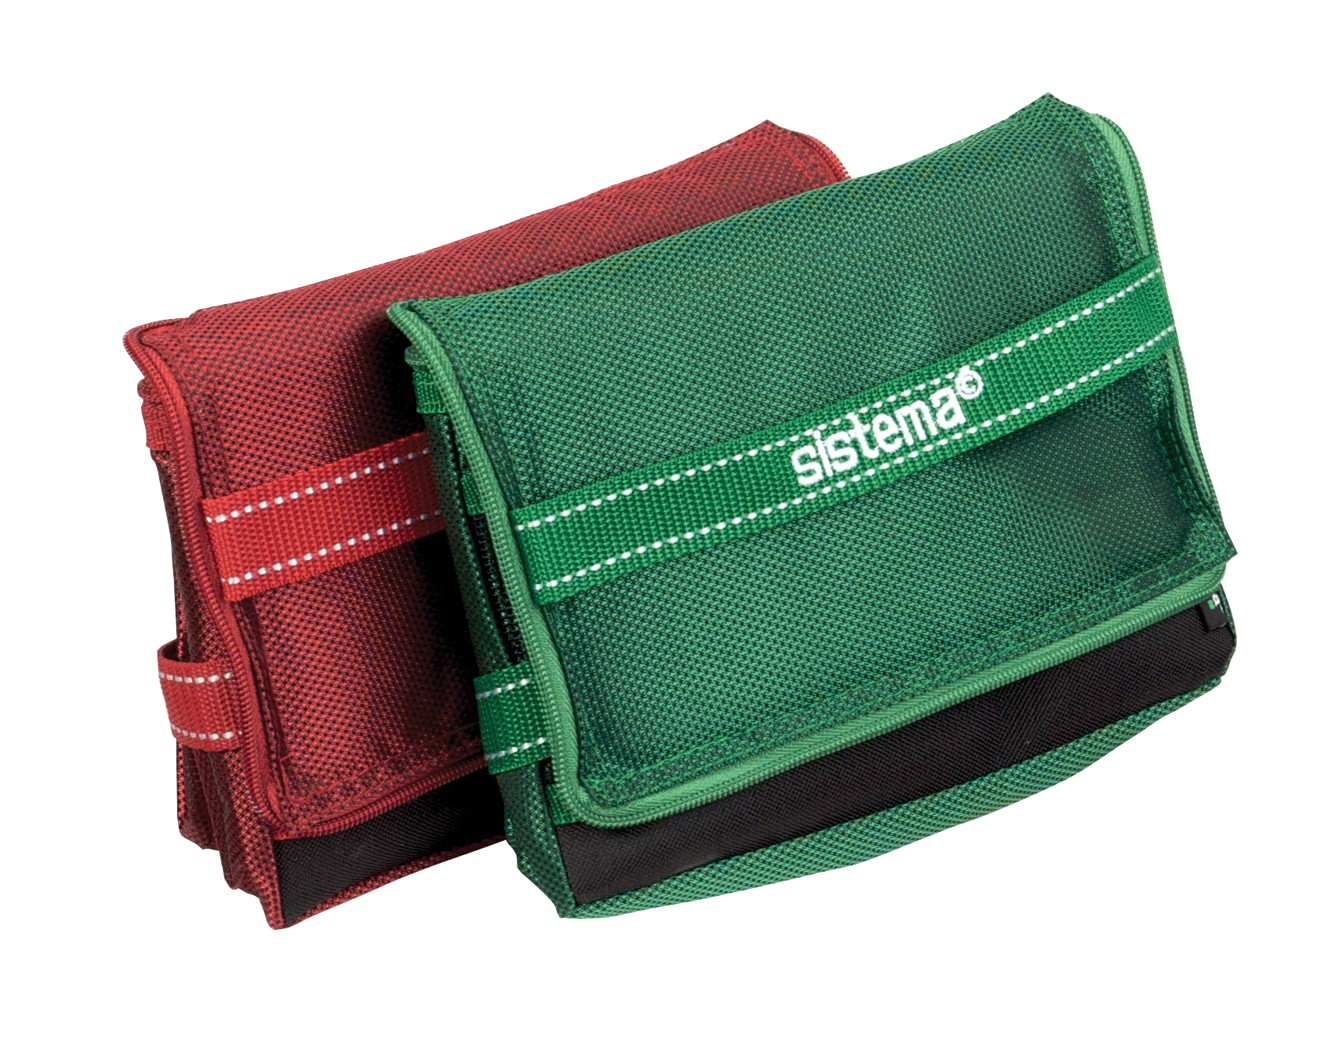 Sistema Maxi Folding Lunch Pouch From Storage Box